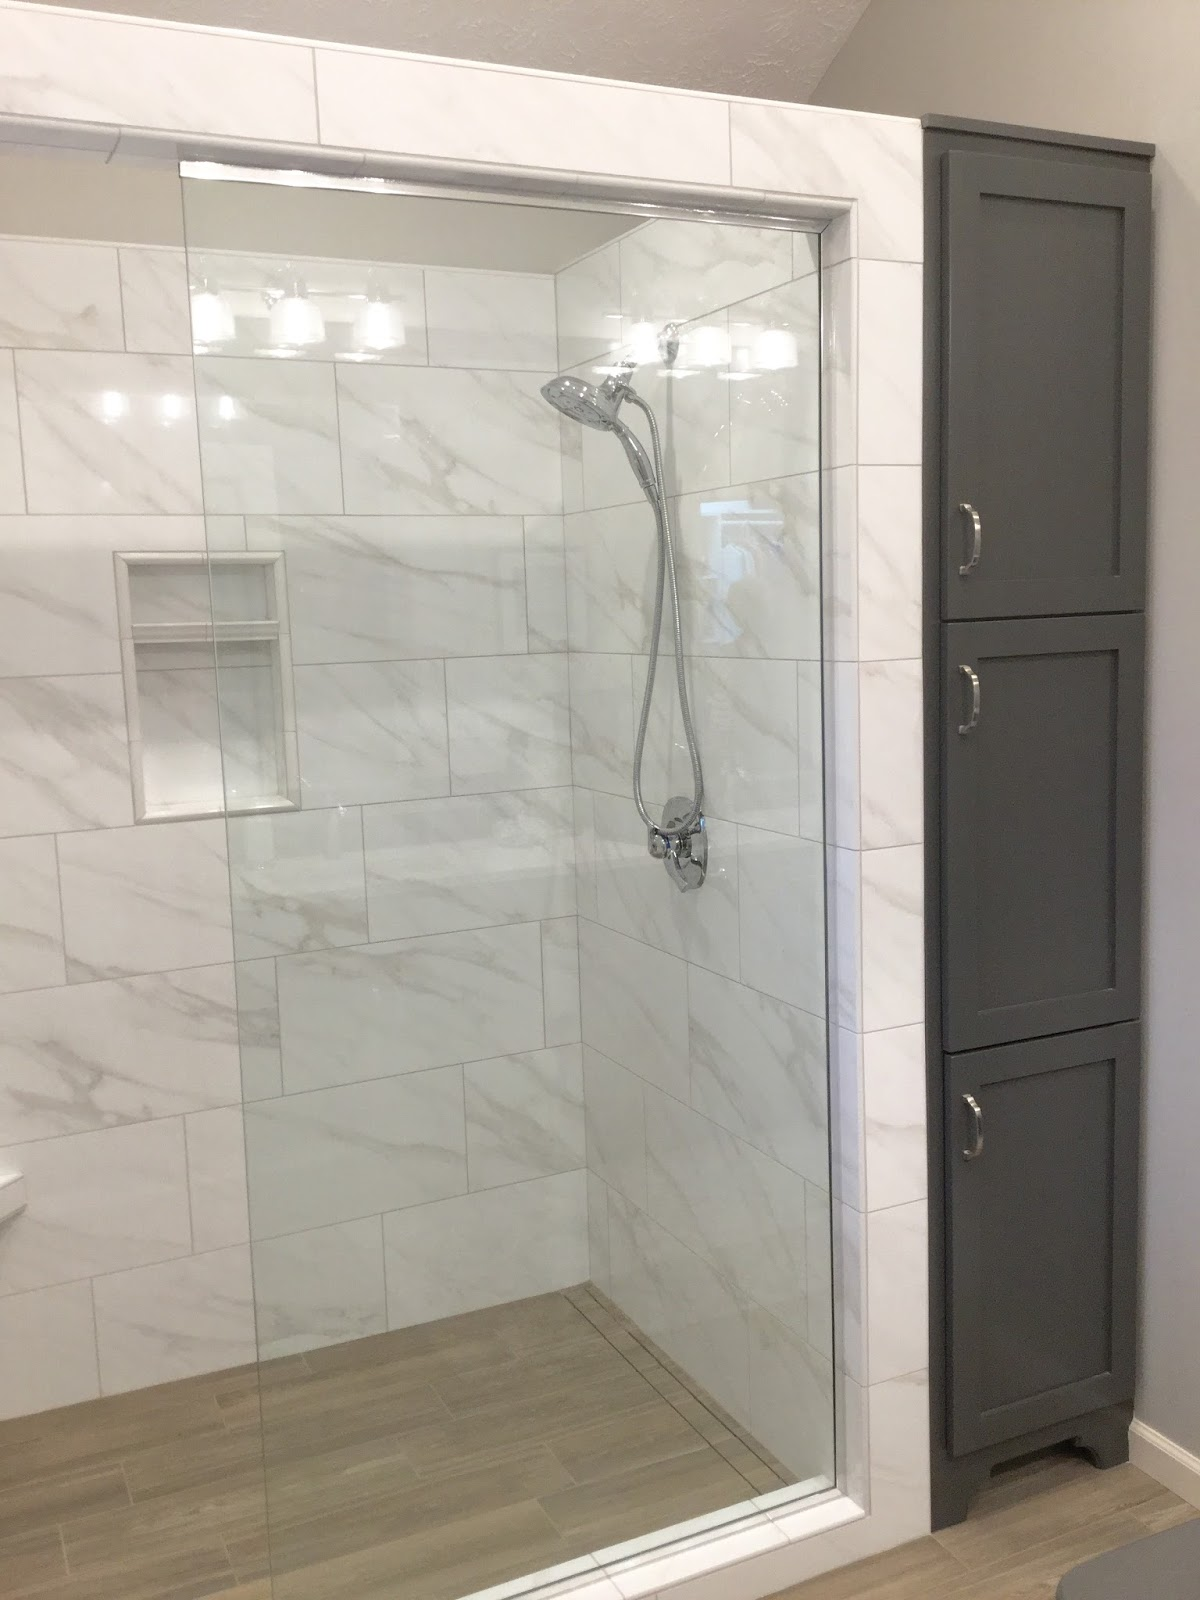 Elegant Hope you enjoyed seeing this Master Bathroom en suite renovation e to life Onto the next project